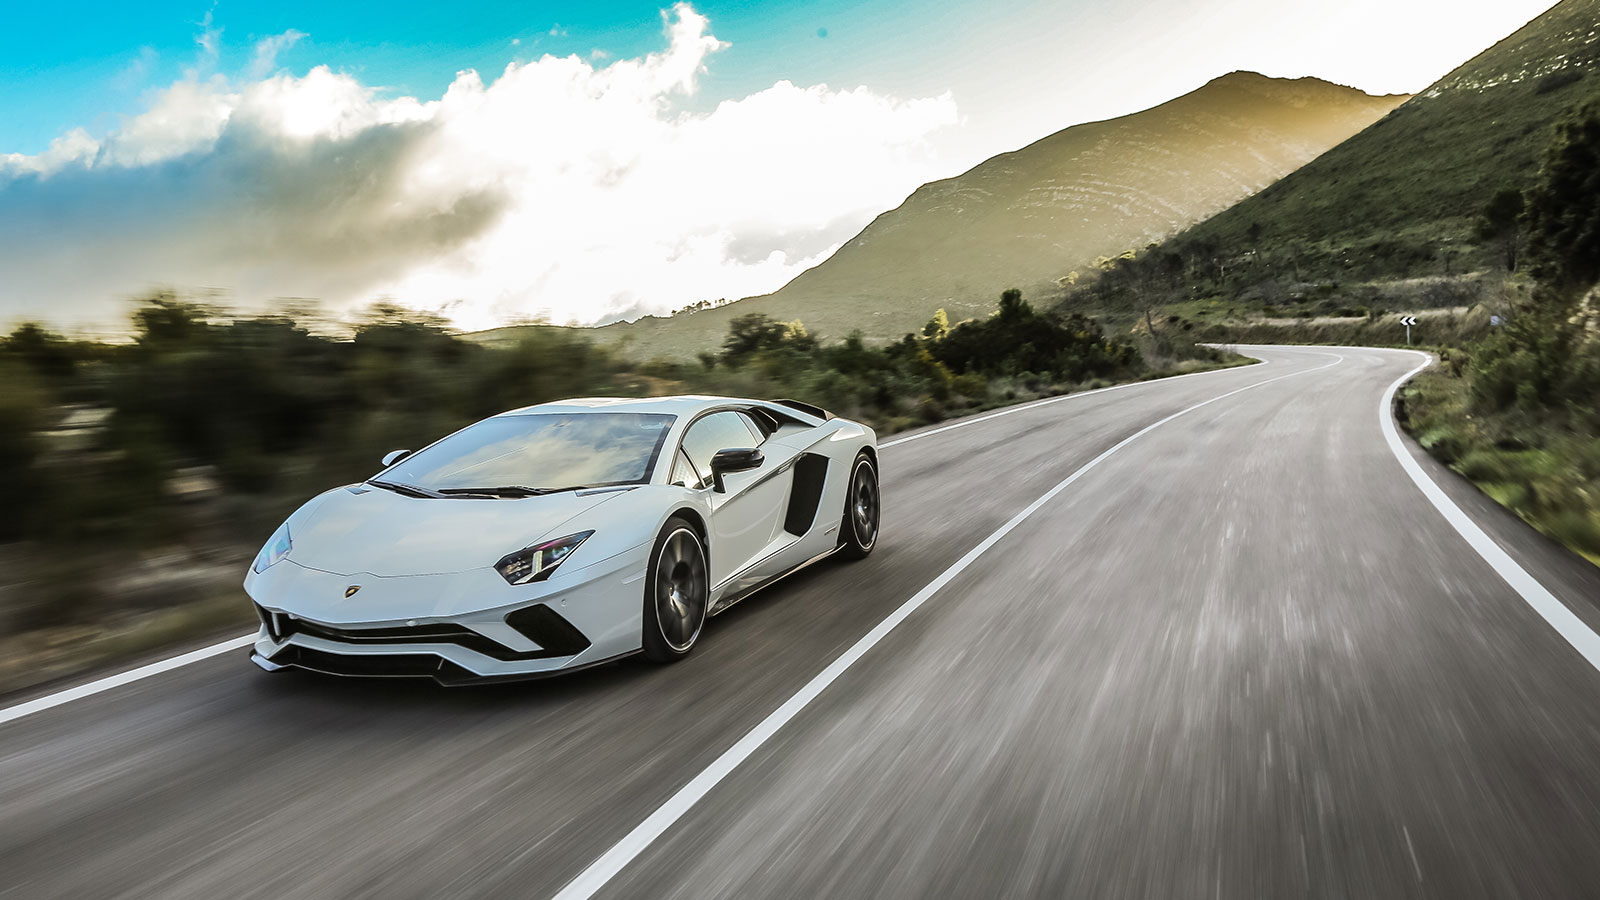 Lamborghini Aventador S Coupe - The Icon Reborn image 10